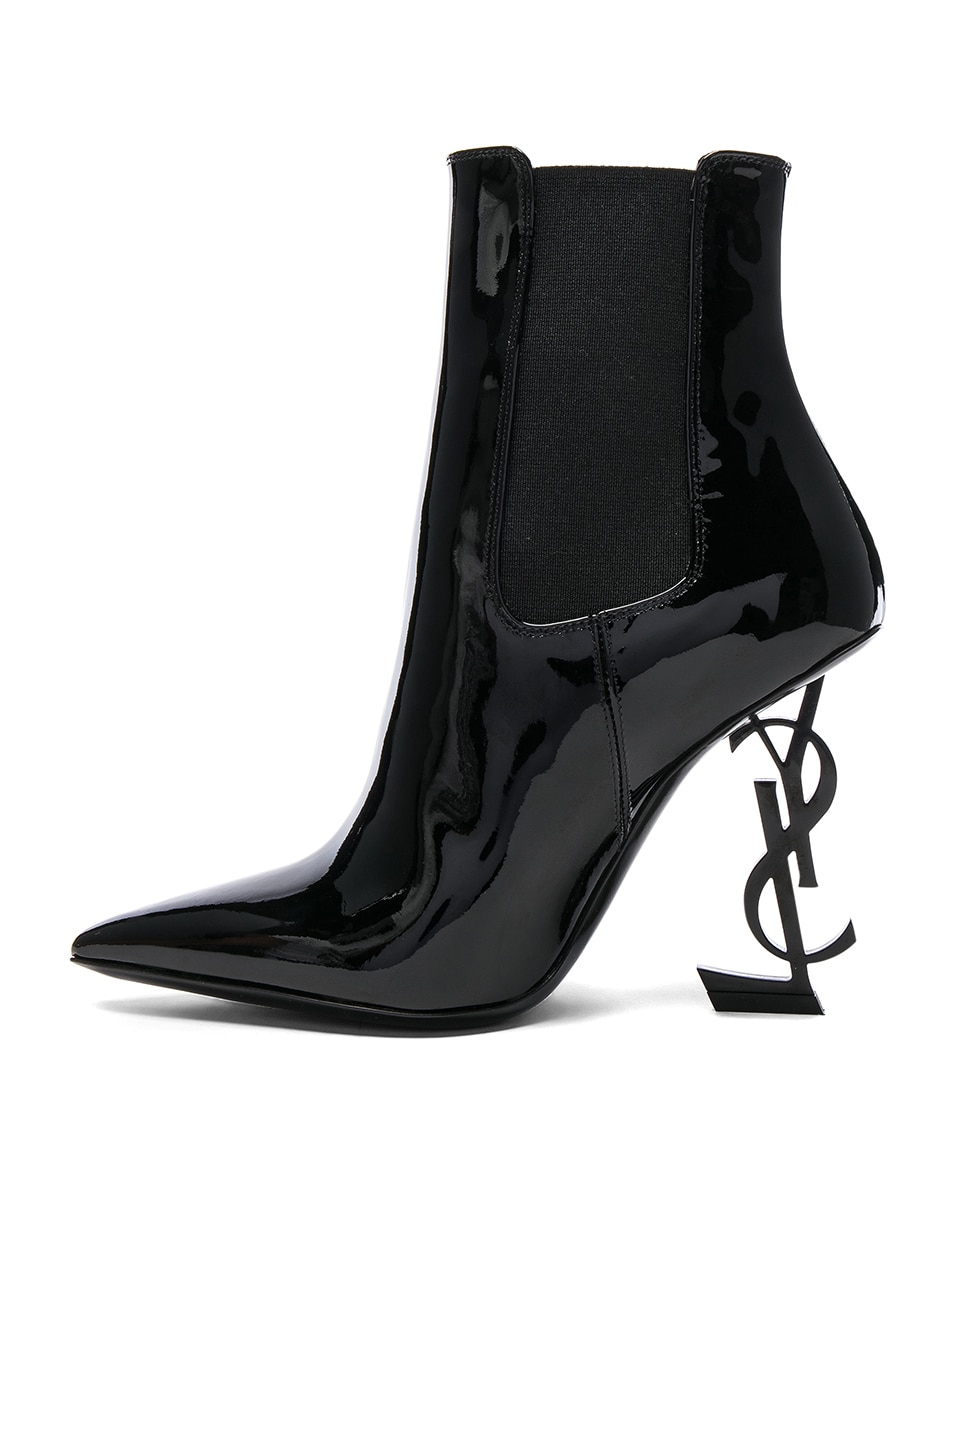 63eaf04c58b ... Image 5 of Saint Laurent Patent Opium Monogramme Heeled Boots in Black  Black ...